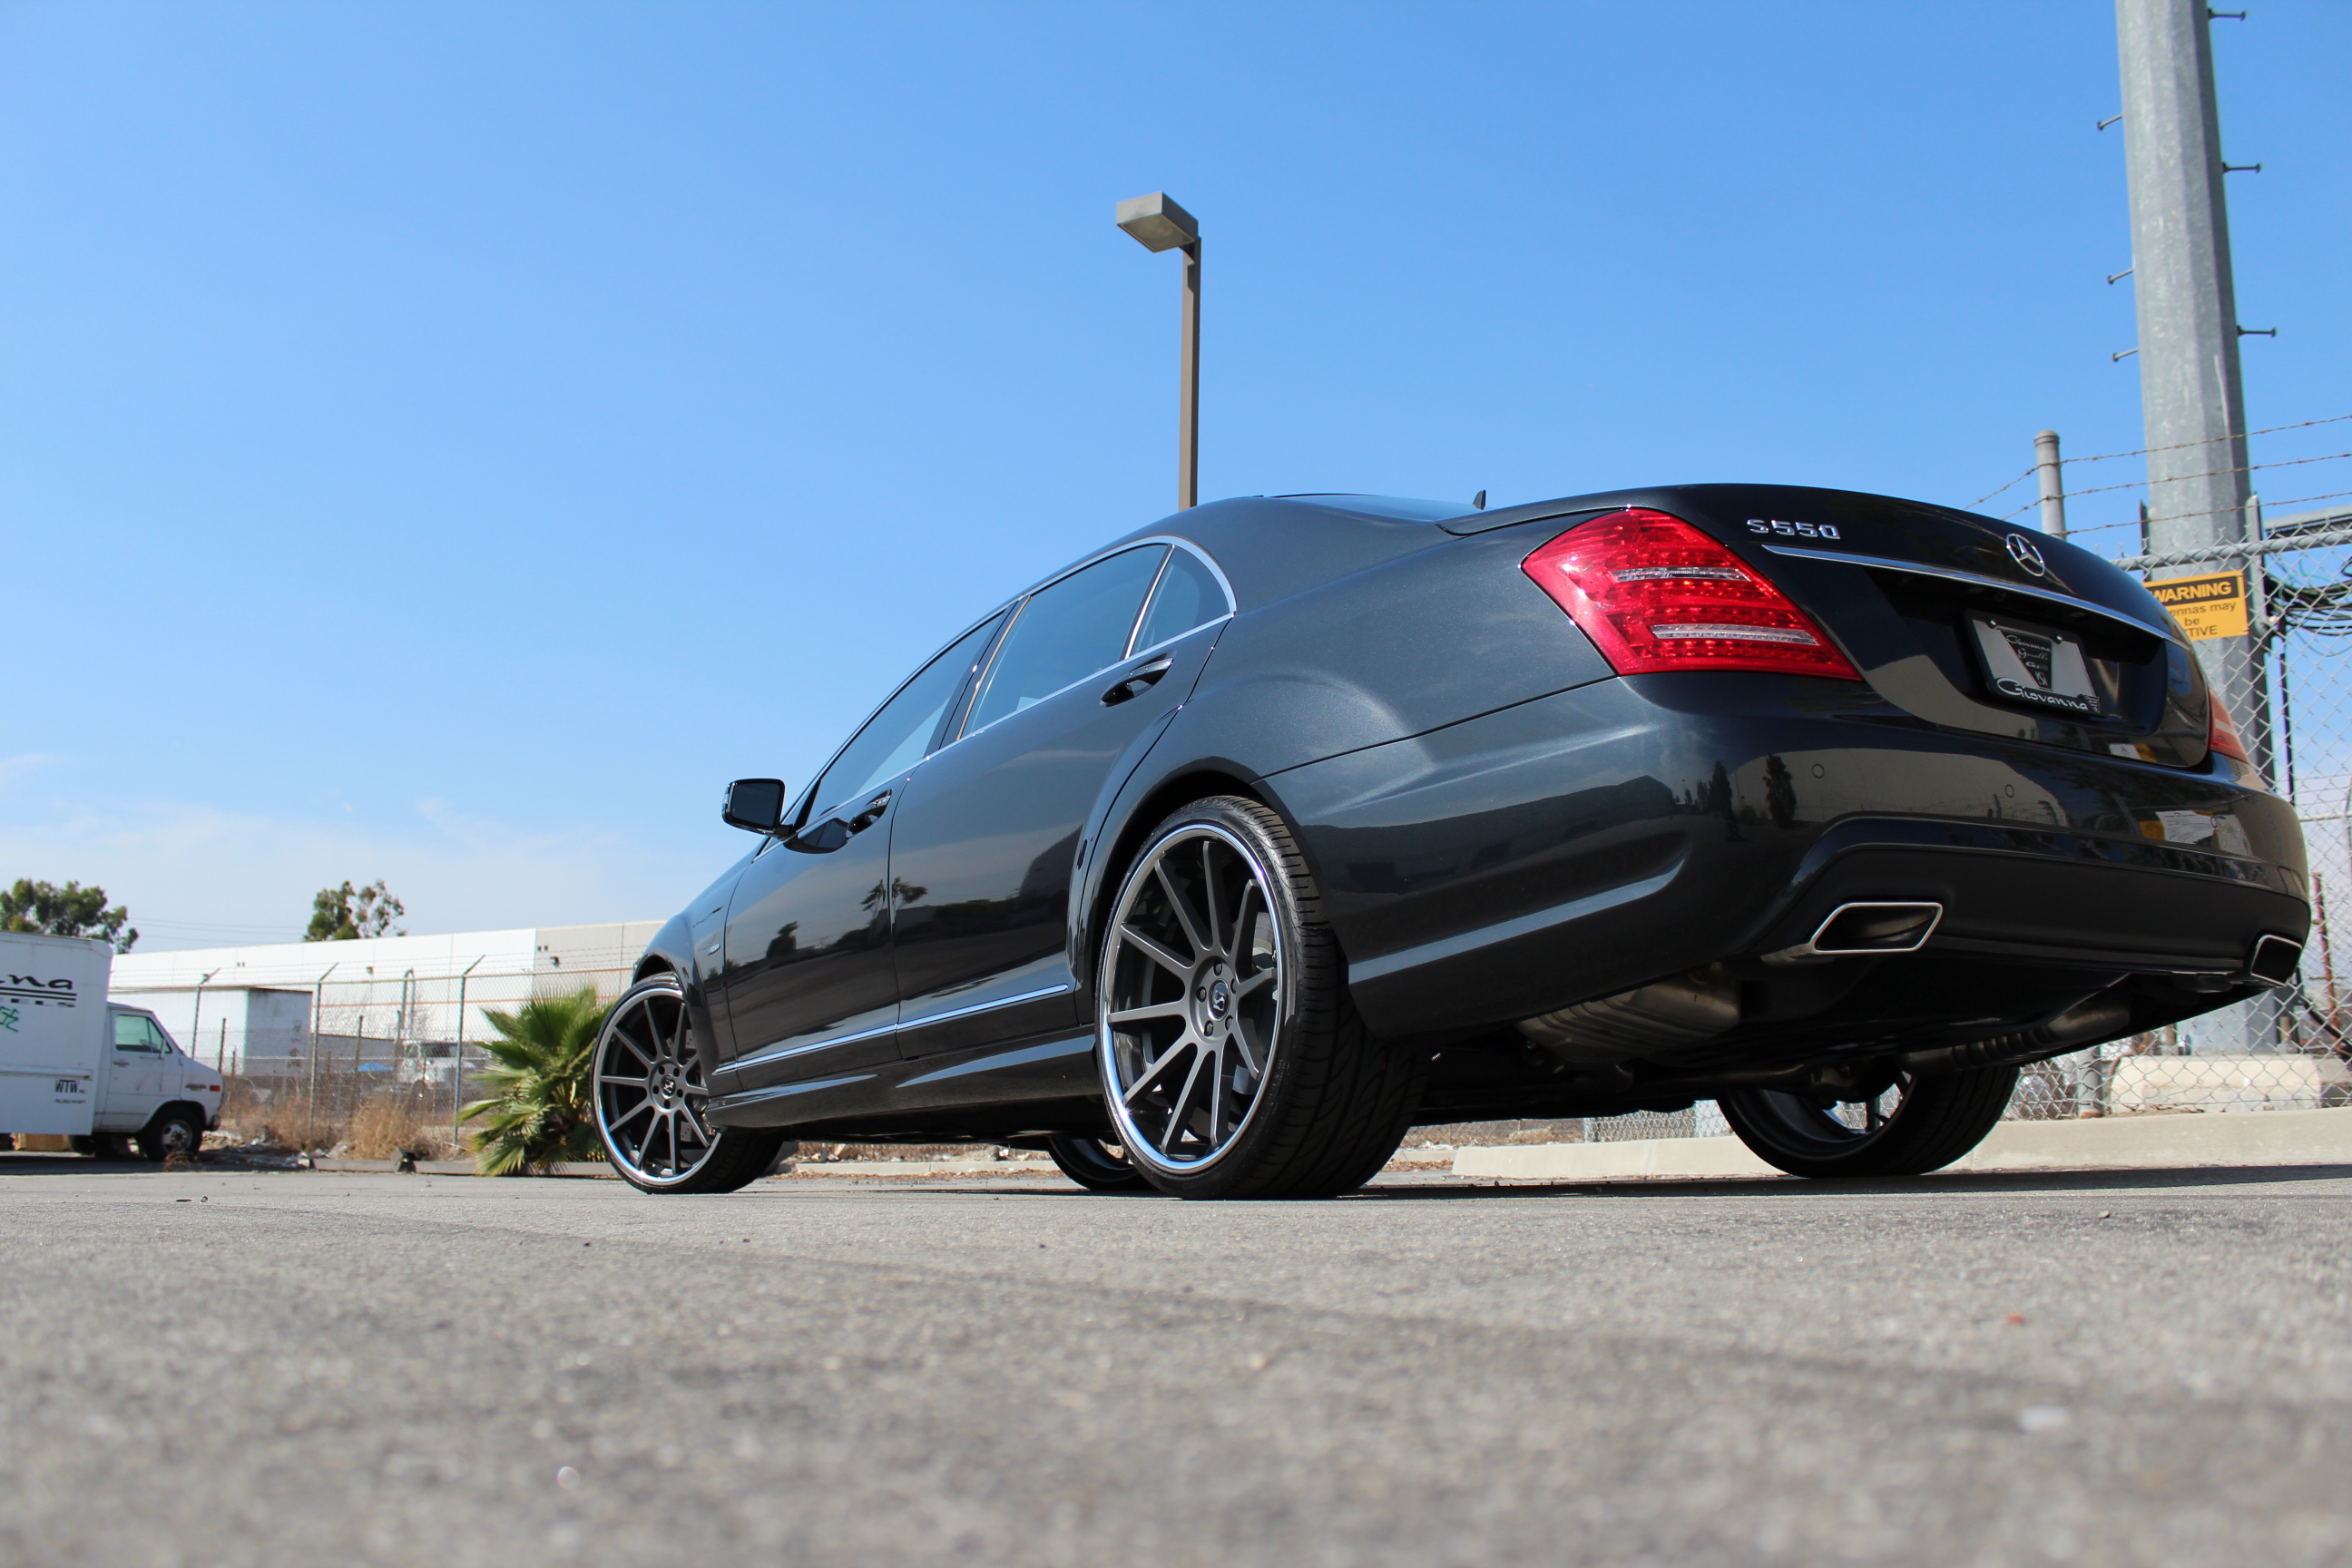 Koko Kuture Lindos Black on Mercedes Benz S Class